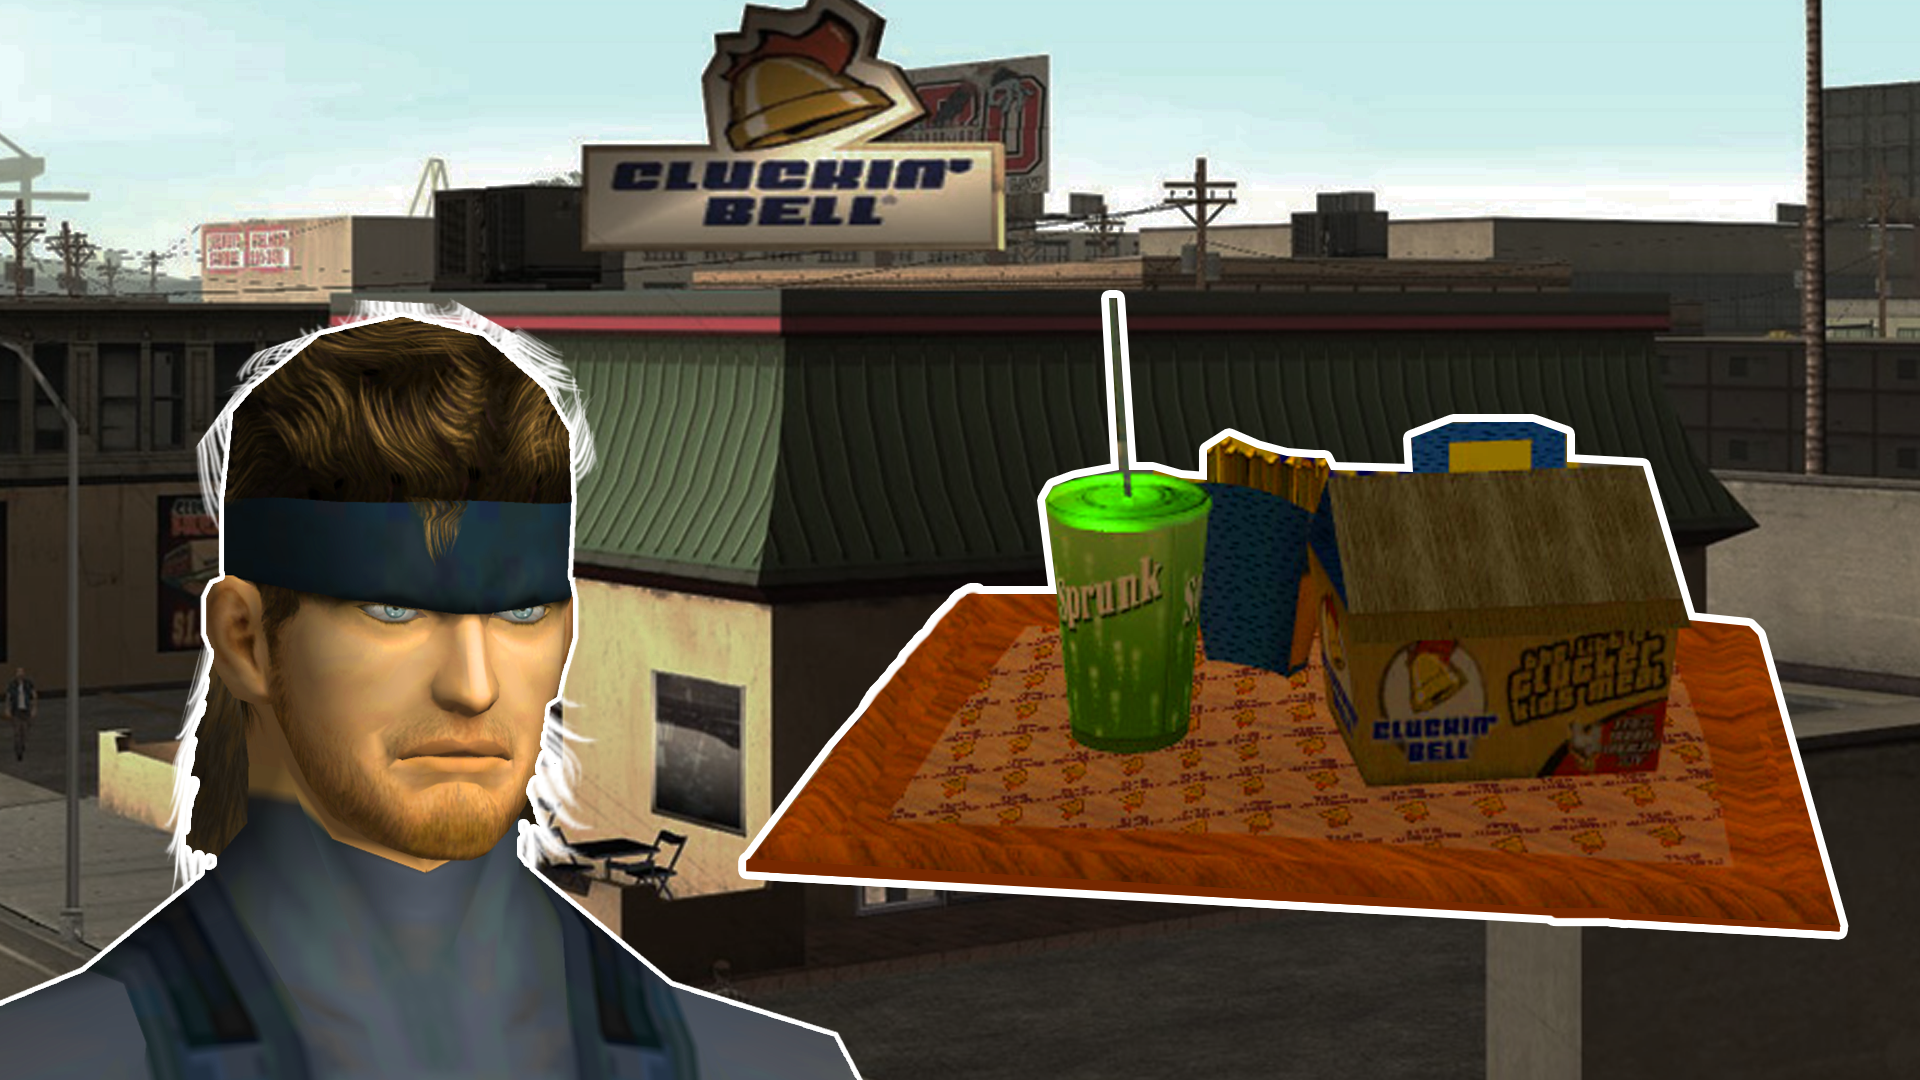 Big Smoke's Famous Fast Food Order From GTA San Andreas Said By Solid Snake